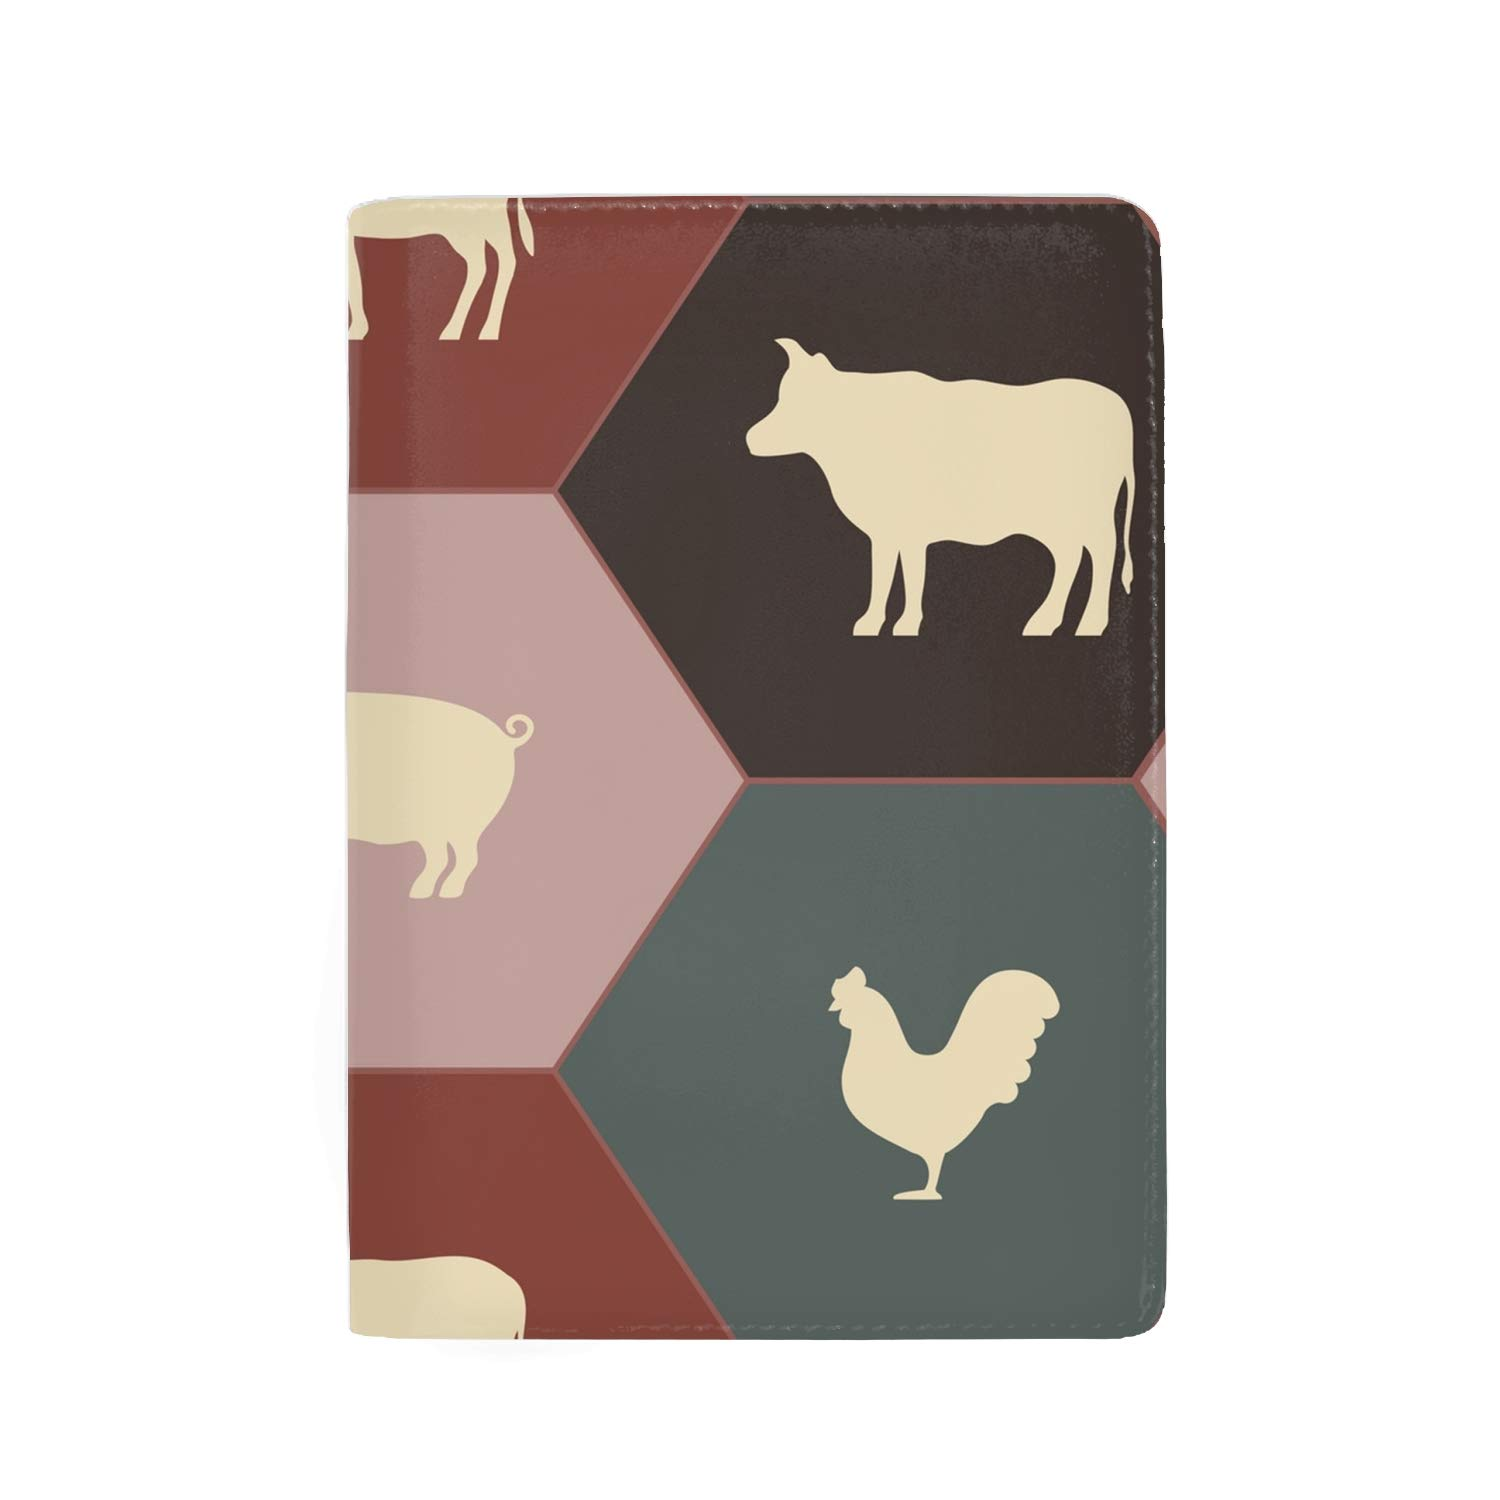 Retro Rooster Fashion Leather Passport Holder Cover Case Travel Wallet 6.5 In